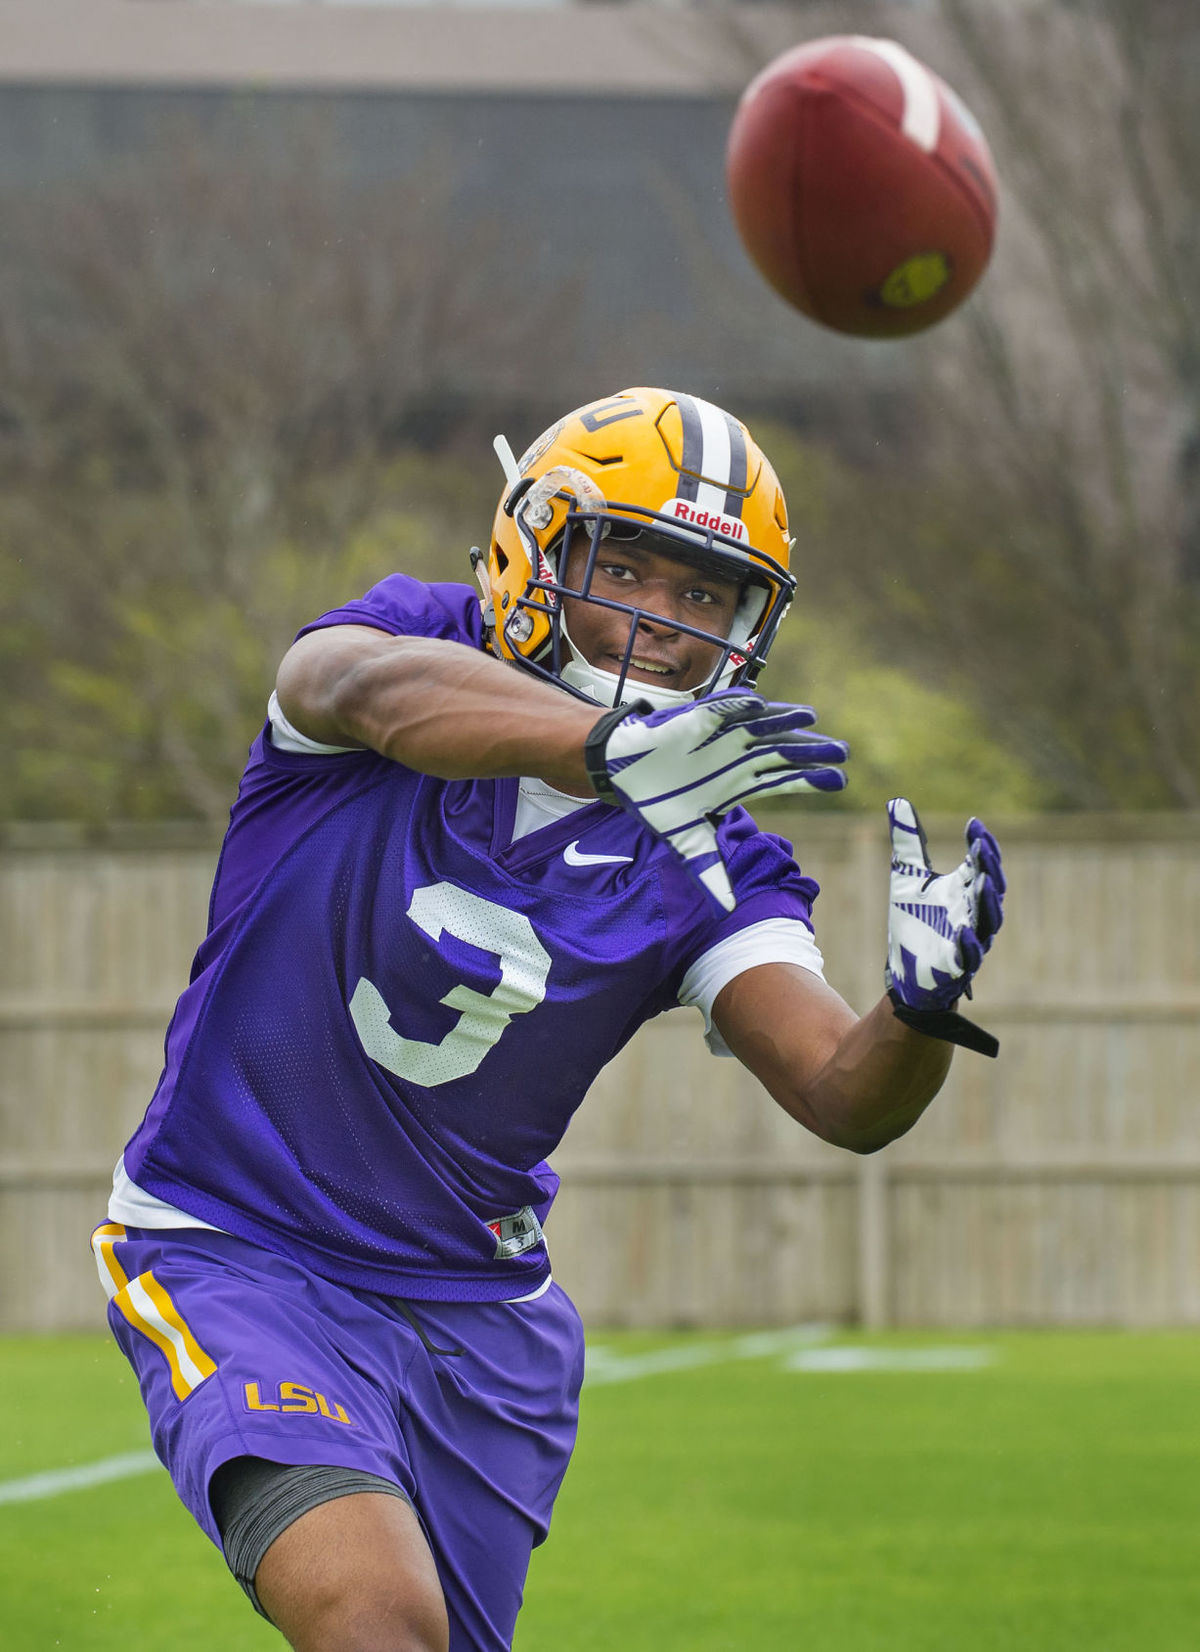 LSU thinks this move for JaCoby Stevens will give them ...